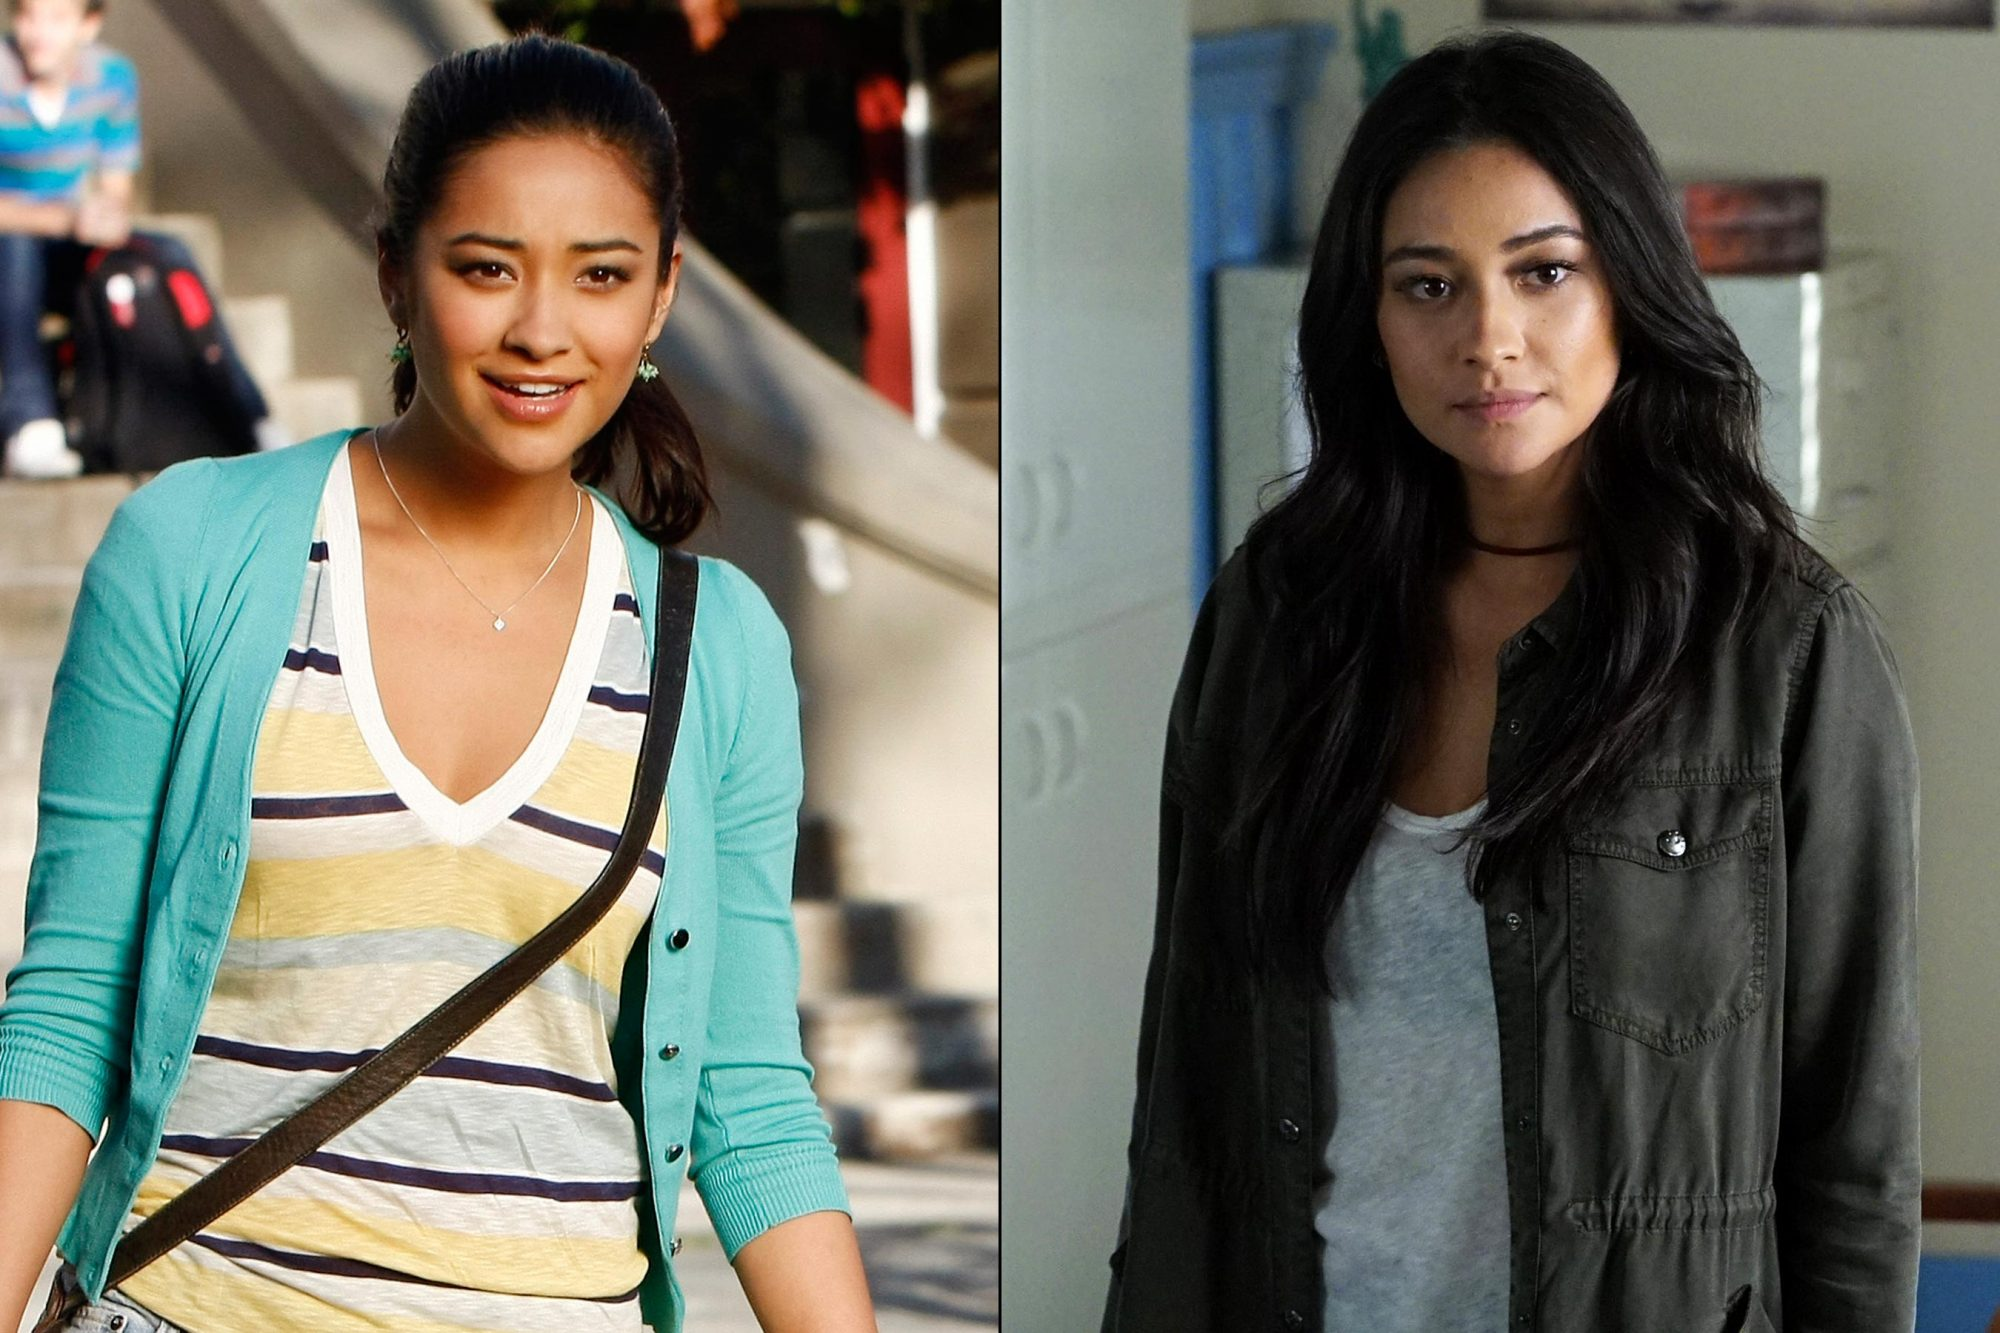 Shay Mitchell as Emily Fields in season 1 (left) and season 7 (right)